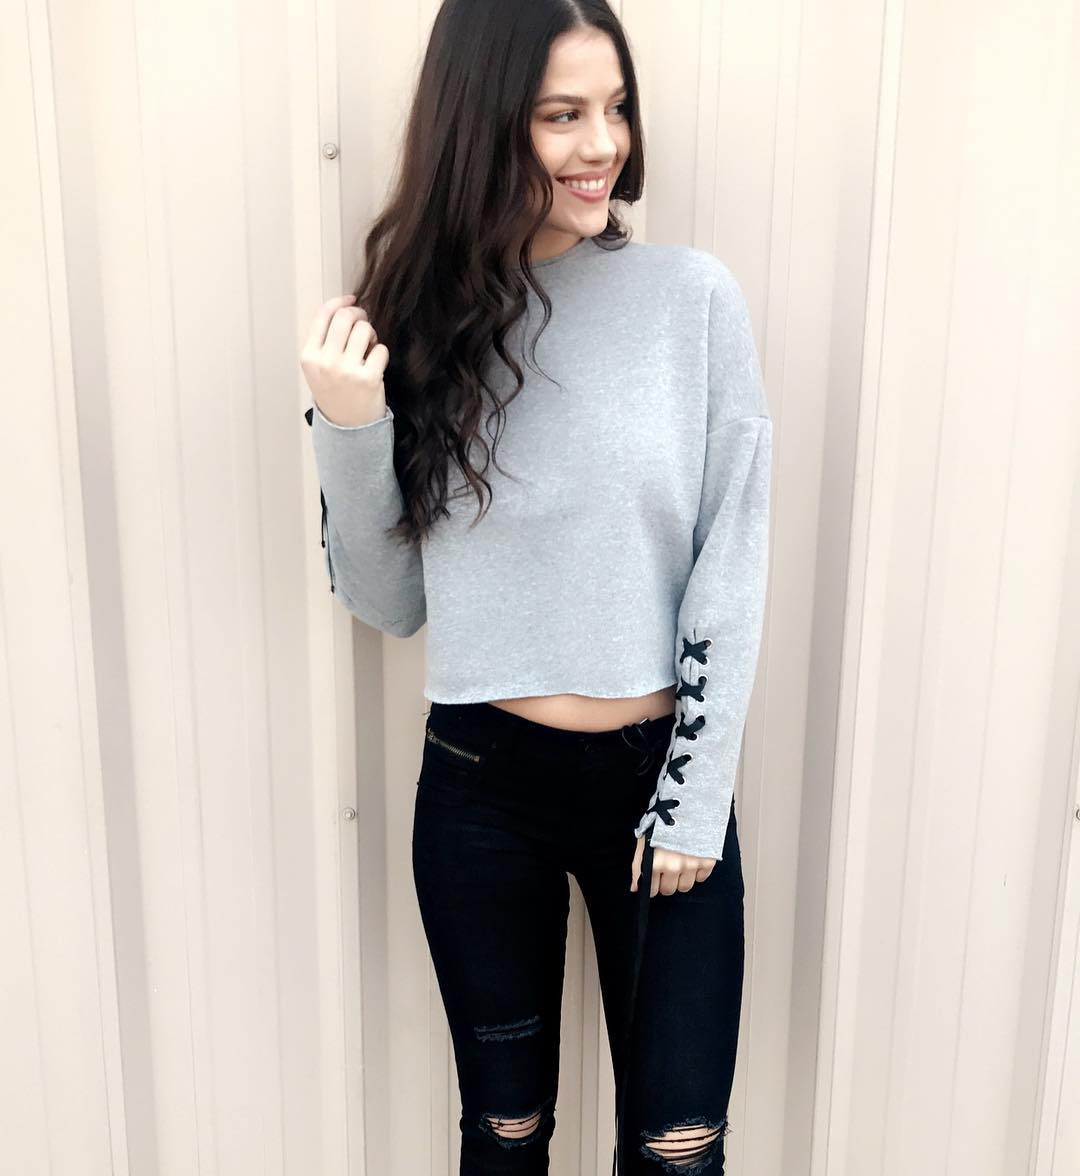 Cropped Grey Pullover With Black Ripped Jeans